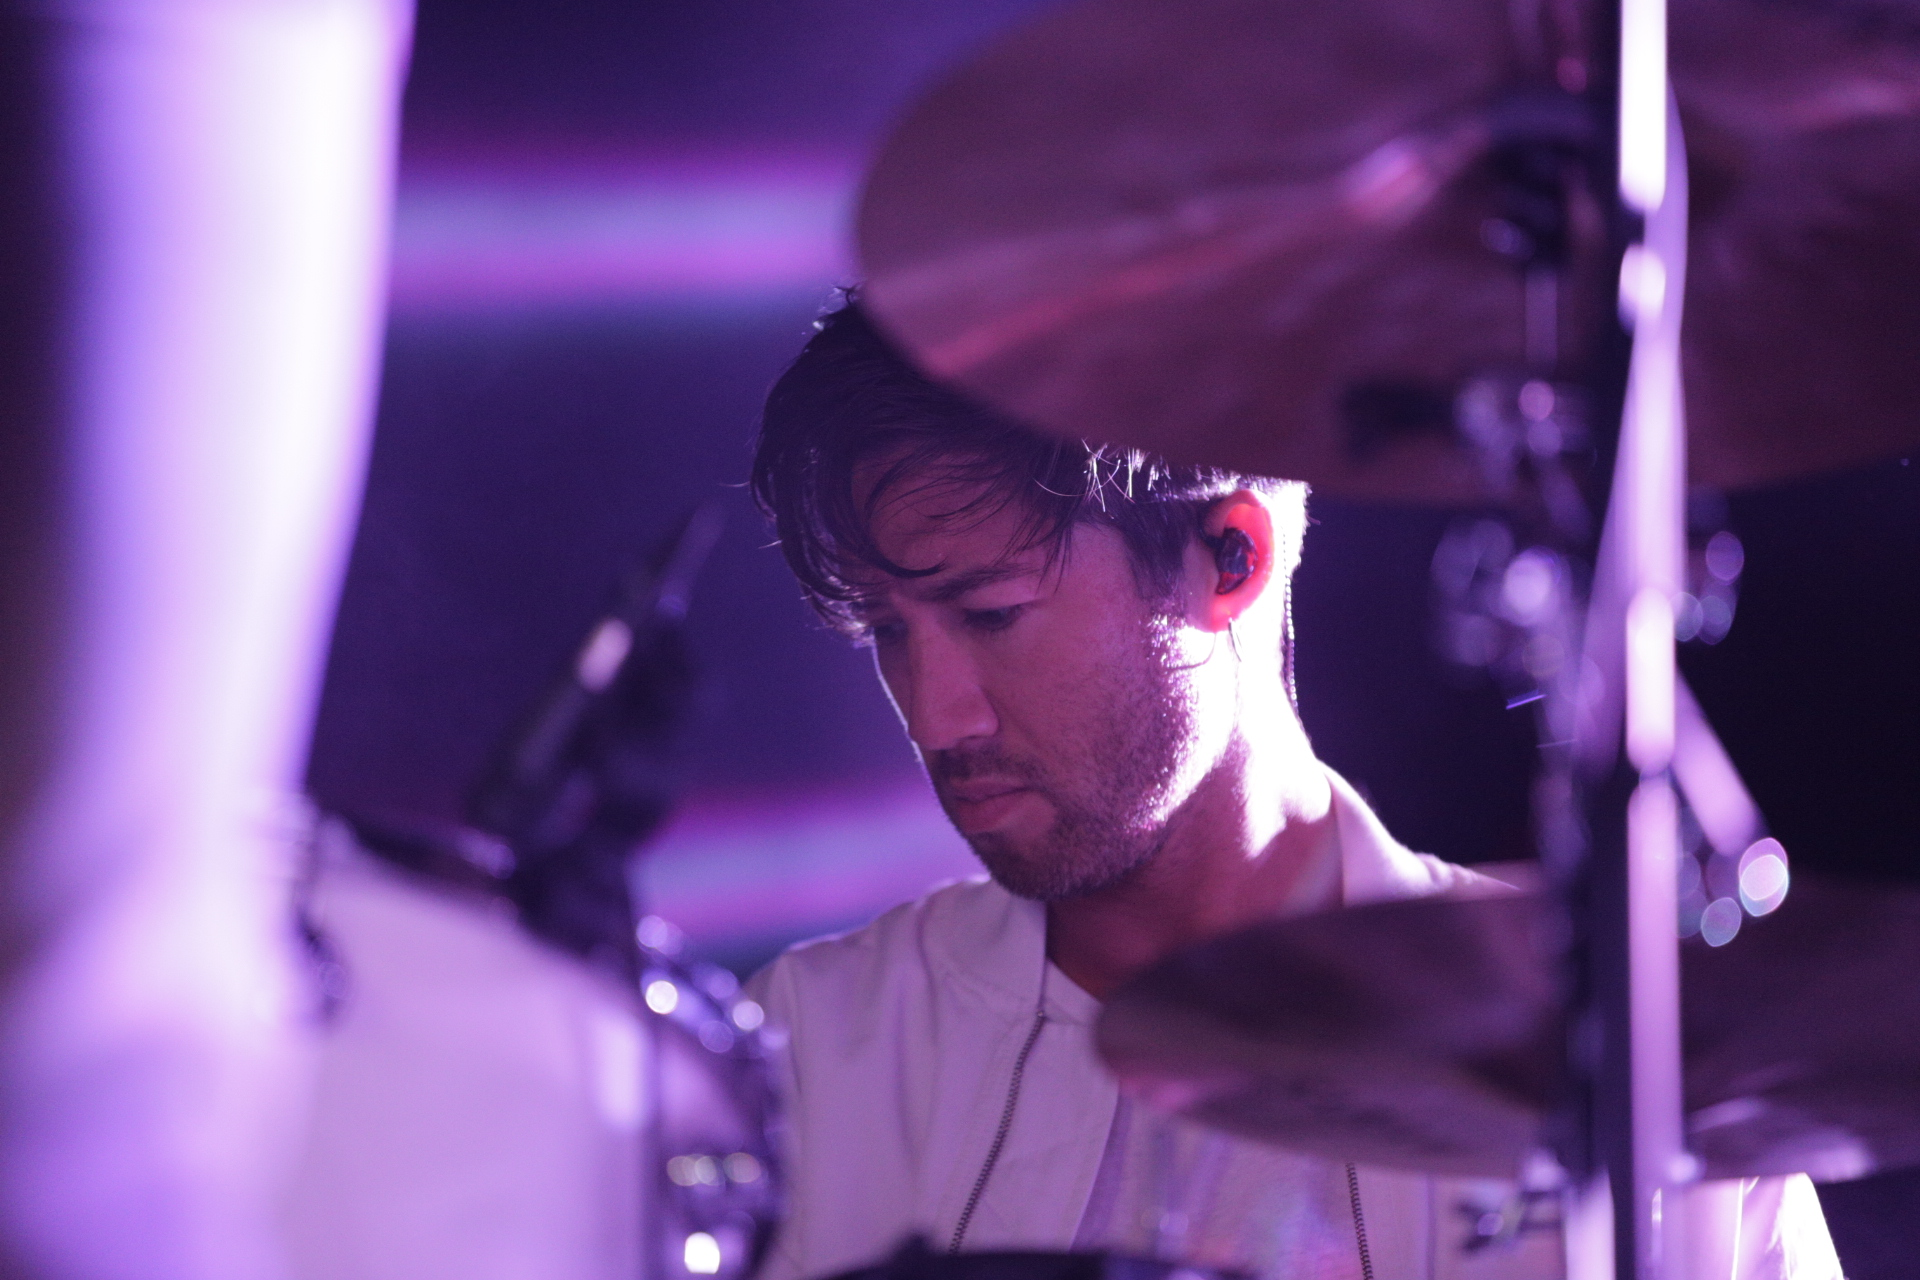 Drummer for Tegan and Sara, playing in Salt Lake City. Photo: @Lmsorenson